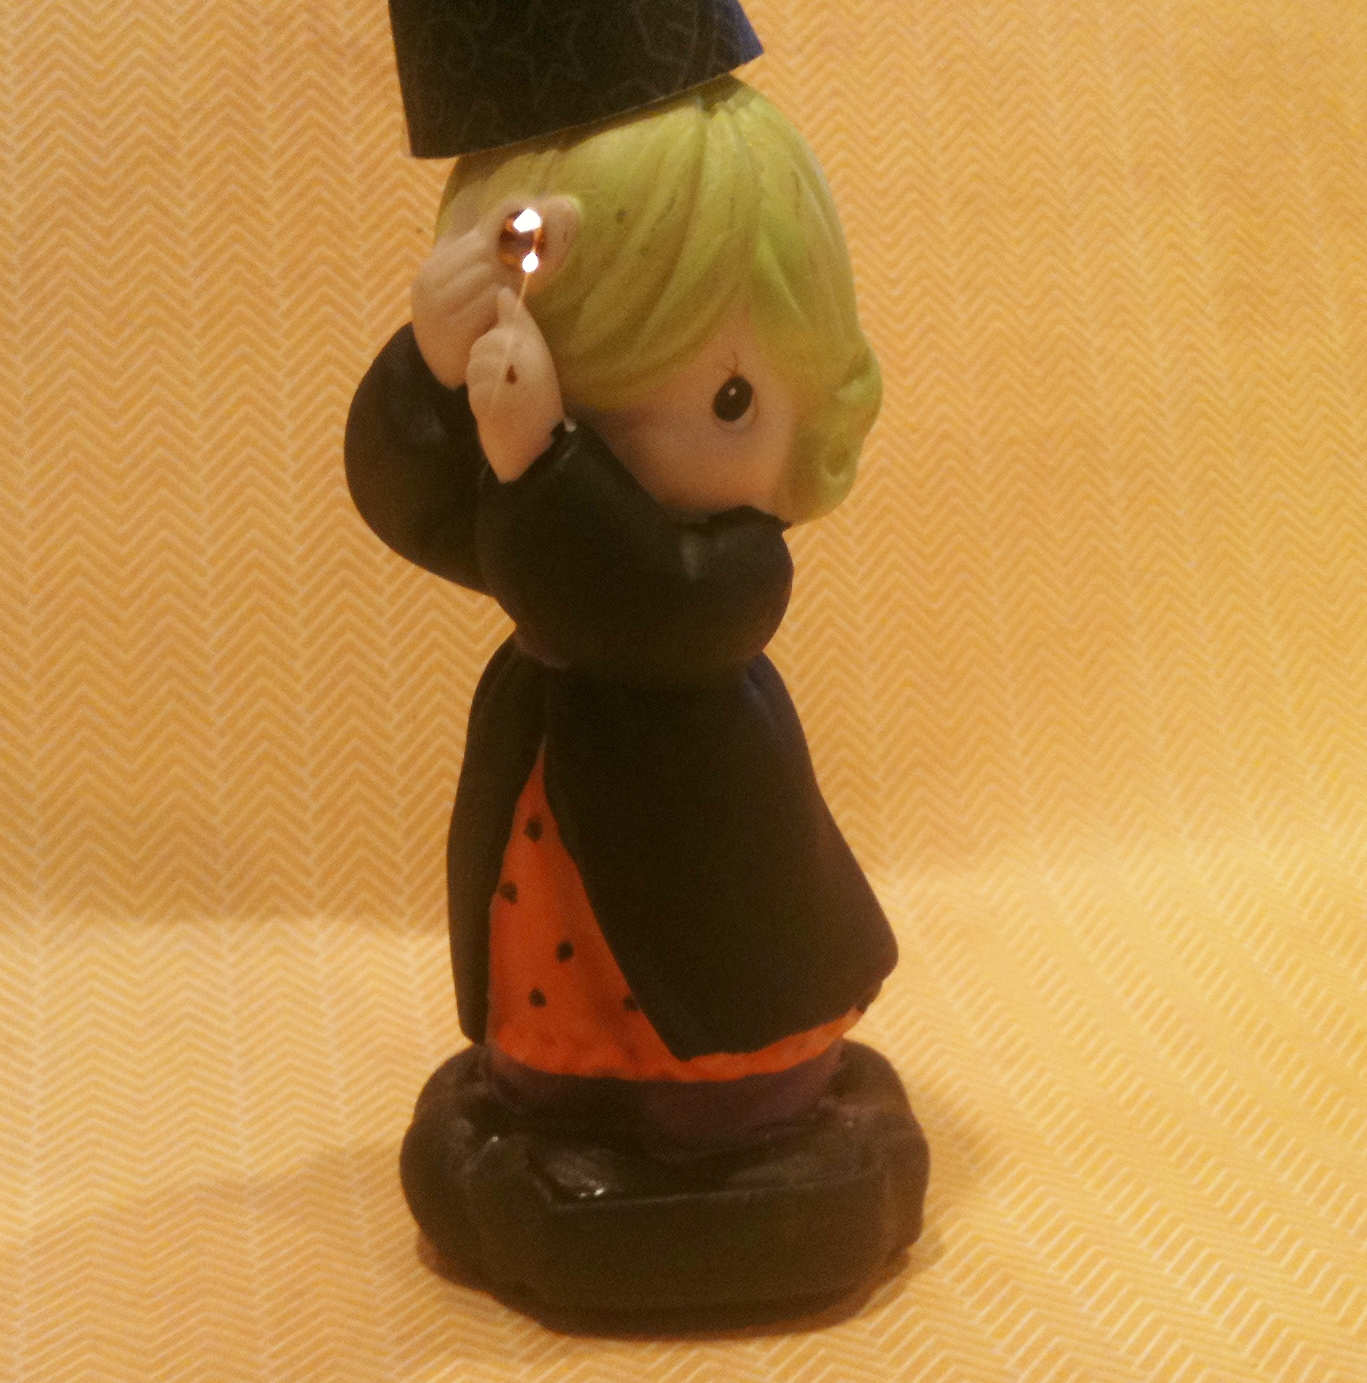 Cute, innocent figurine revamped!